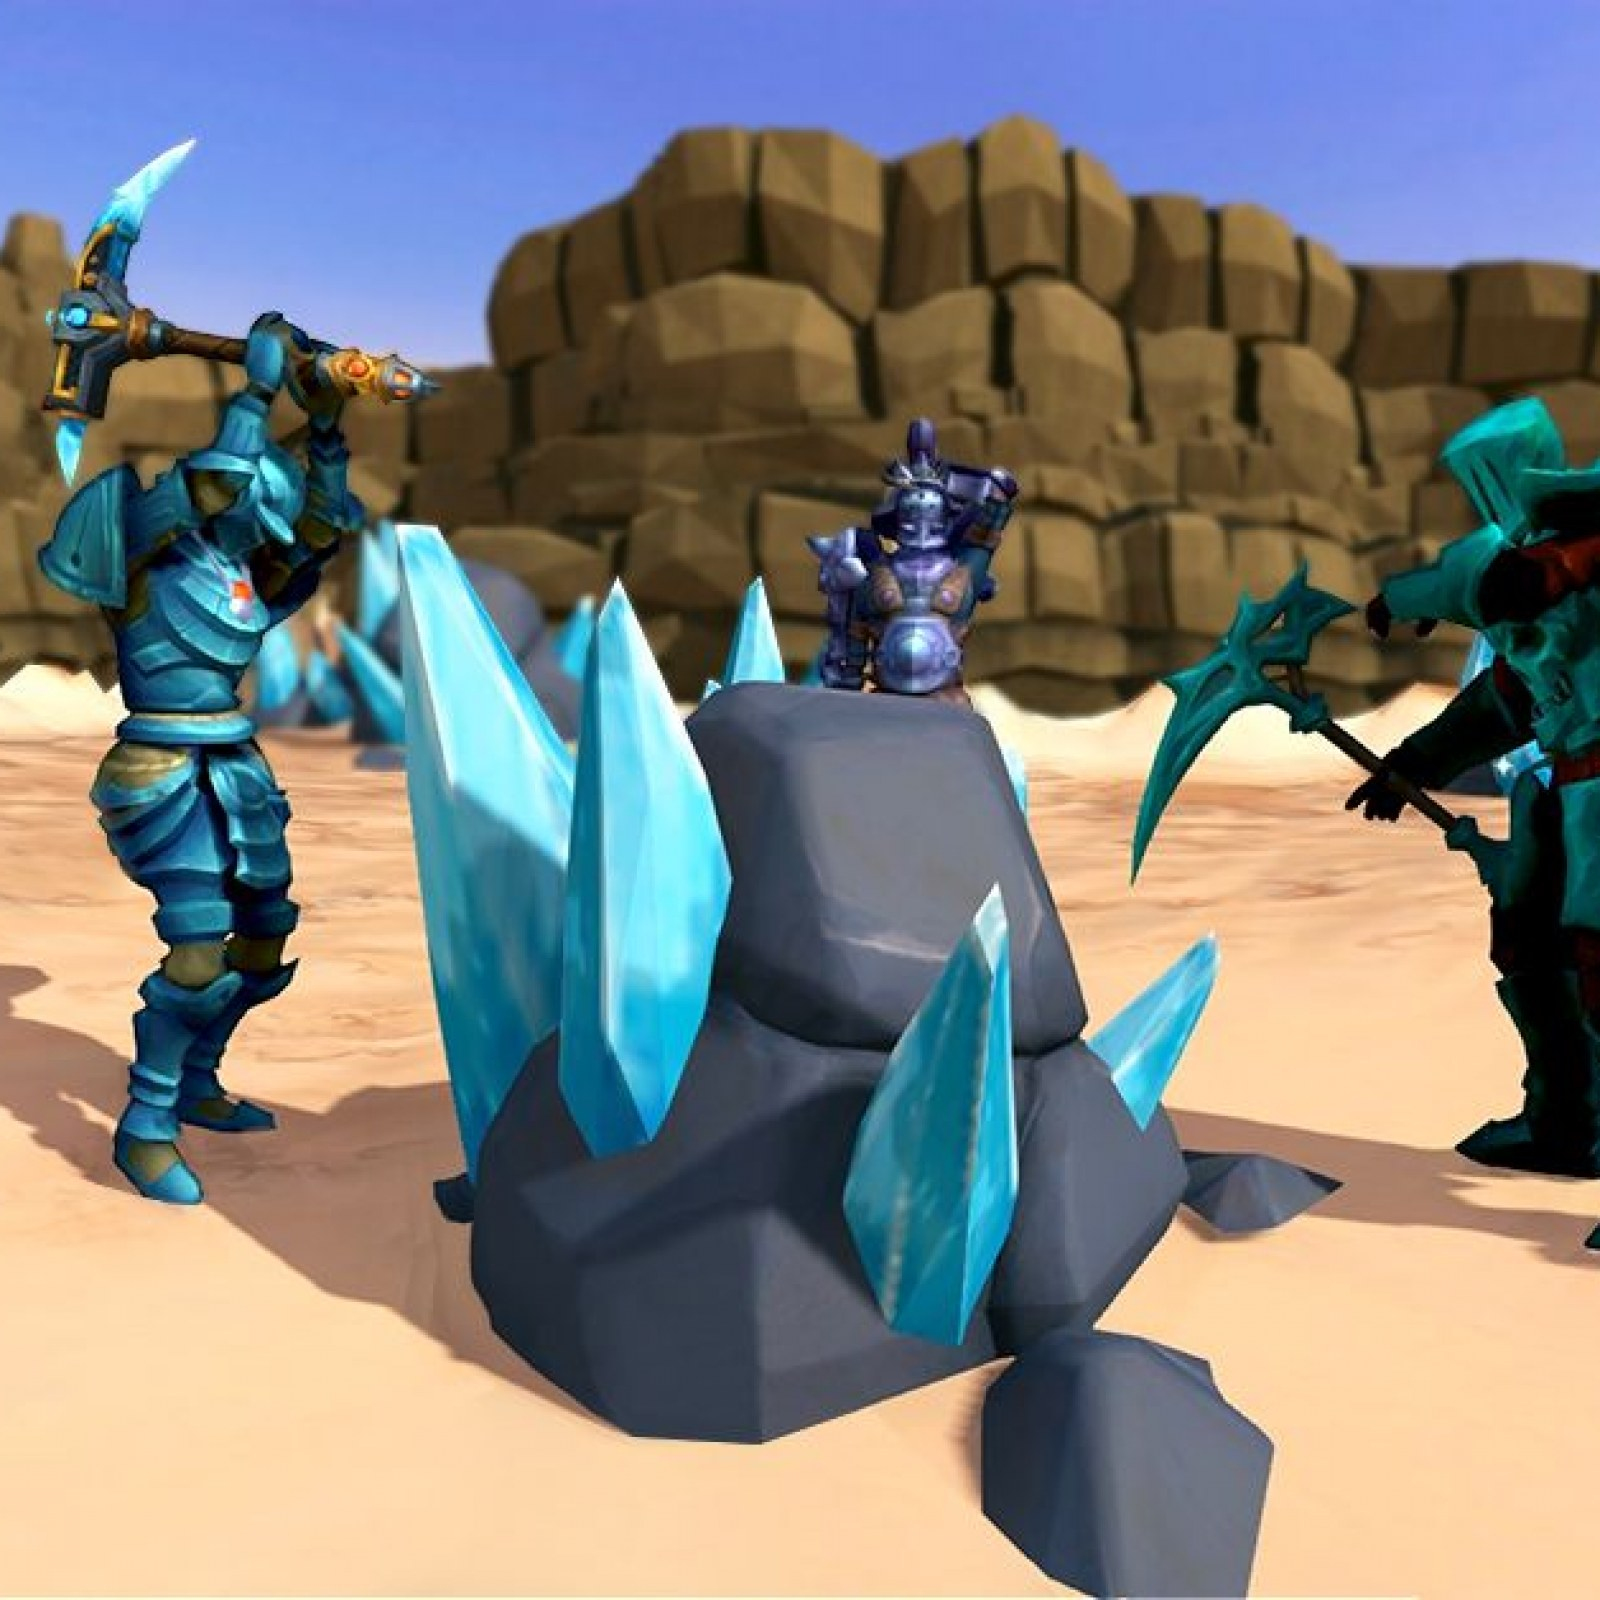 Runescape' Mining and Smithing Rework Update: Get Your Elder Rune